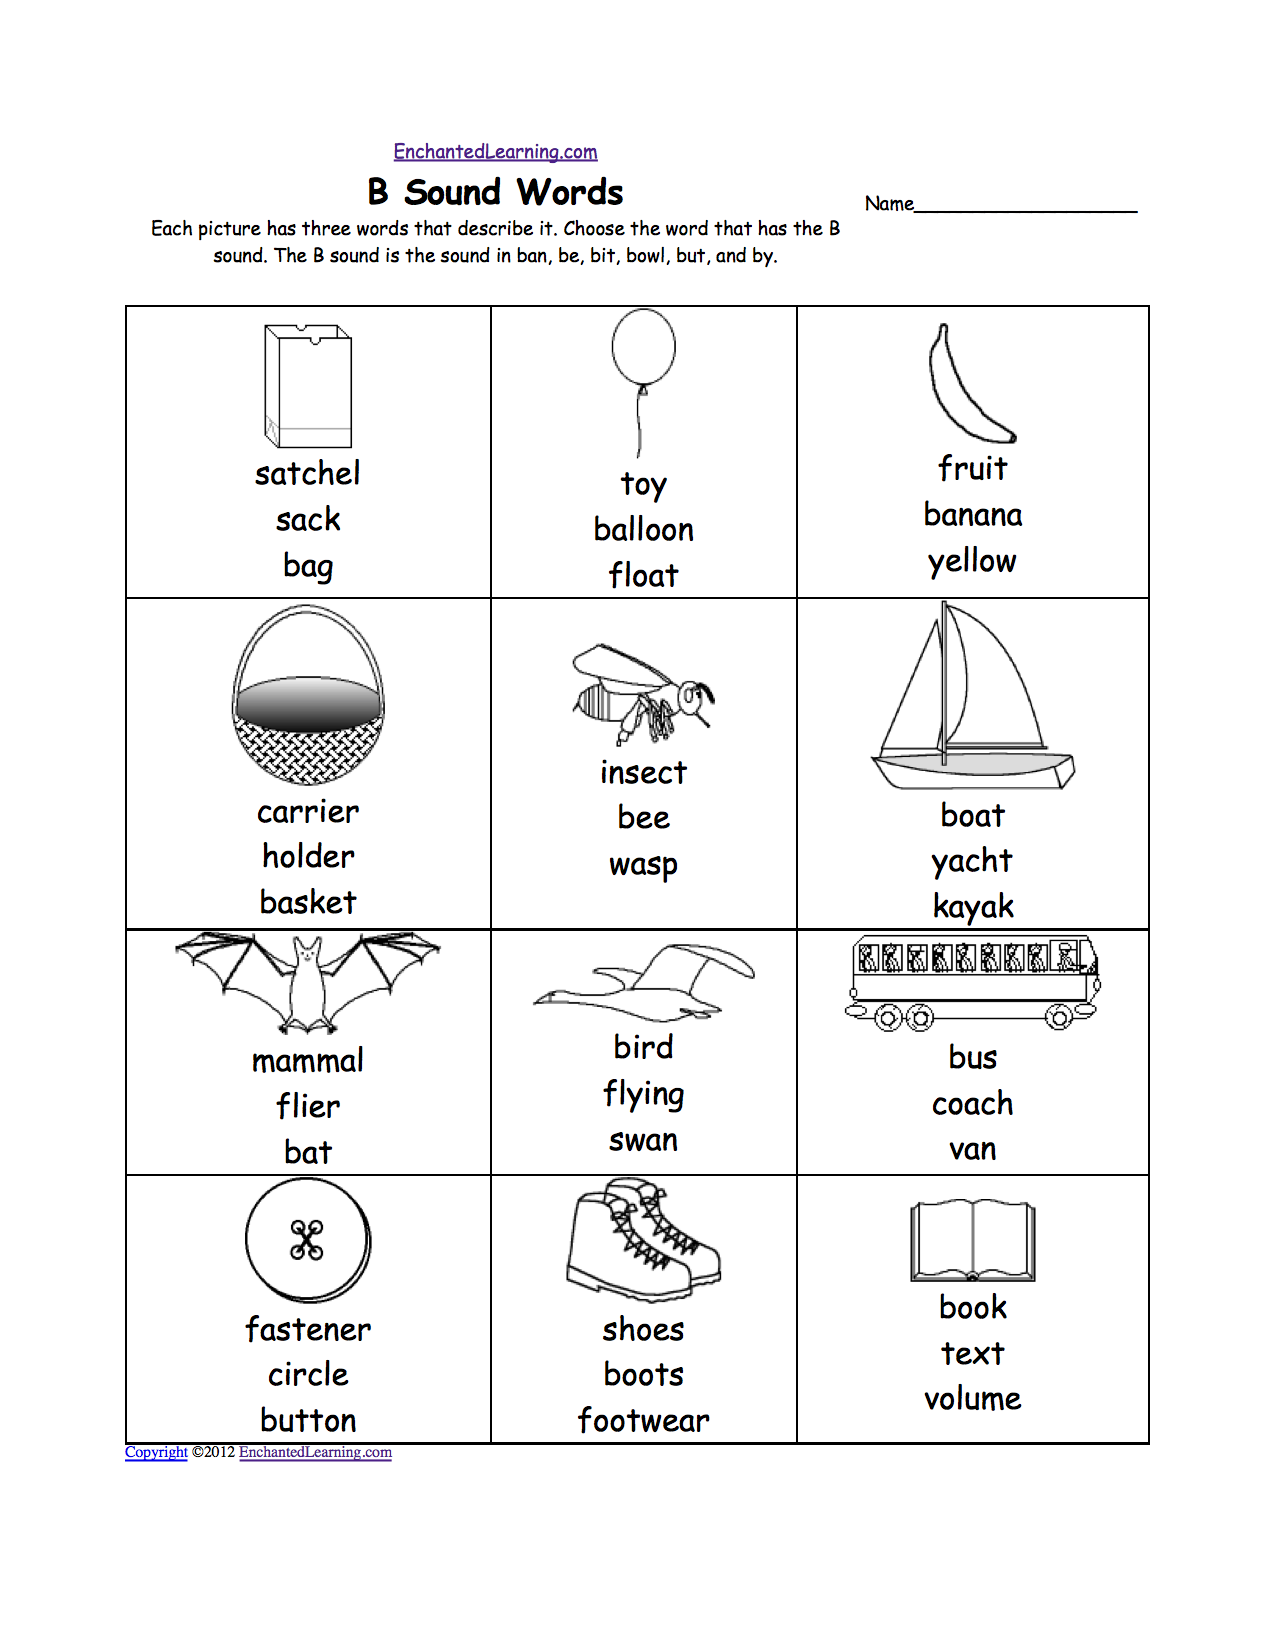 Aldiablosus  Surprising Phonics Worksheets Multiple Choice Worksheets To Print  With Extraordinary Quotbquot Sound Phonics Worksheet Multiple Choice Each Picture Has Three Words That Describe It Choose The Word That Has A Quotbquot Sound The Quotbquot Sound Is The Sound  With Cool Virtual Lab The Cell Cycle And Cancer Worksheet Also Sequences Ks Worksheet In Addition Wave Characteristics Worksheet And Worksheet   Percent Composition And Empirical Formulas Answers As Well As Multiplication Worksheets Tes Additionally Stop Start Continue Worksheet From Enchantedlearningcom With Aldiablosus  Extraordinary Phonics Worksheets Multiple Choice Worksheets To Print  With Cool Quotbquot Sound Phonics Worksheet Multiple Choice Each Picture Has Three Words That Describe It Choose The Word That Has A Quotbquot Sound The Quotbquot Sound Is The Sound  And Surprising Virtual Lab The Cell Cycle And Cancer Worksheet Also Sequences Ks Worksheet In Addition Wave Characteristics Worksheet From Enchantedlearningcom